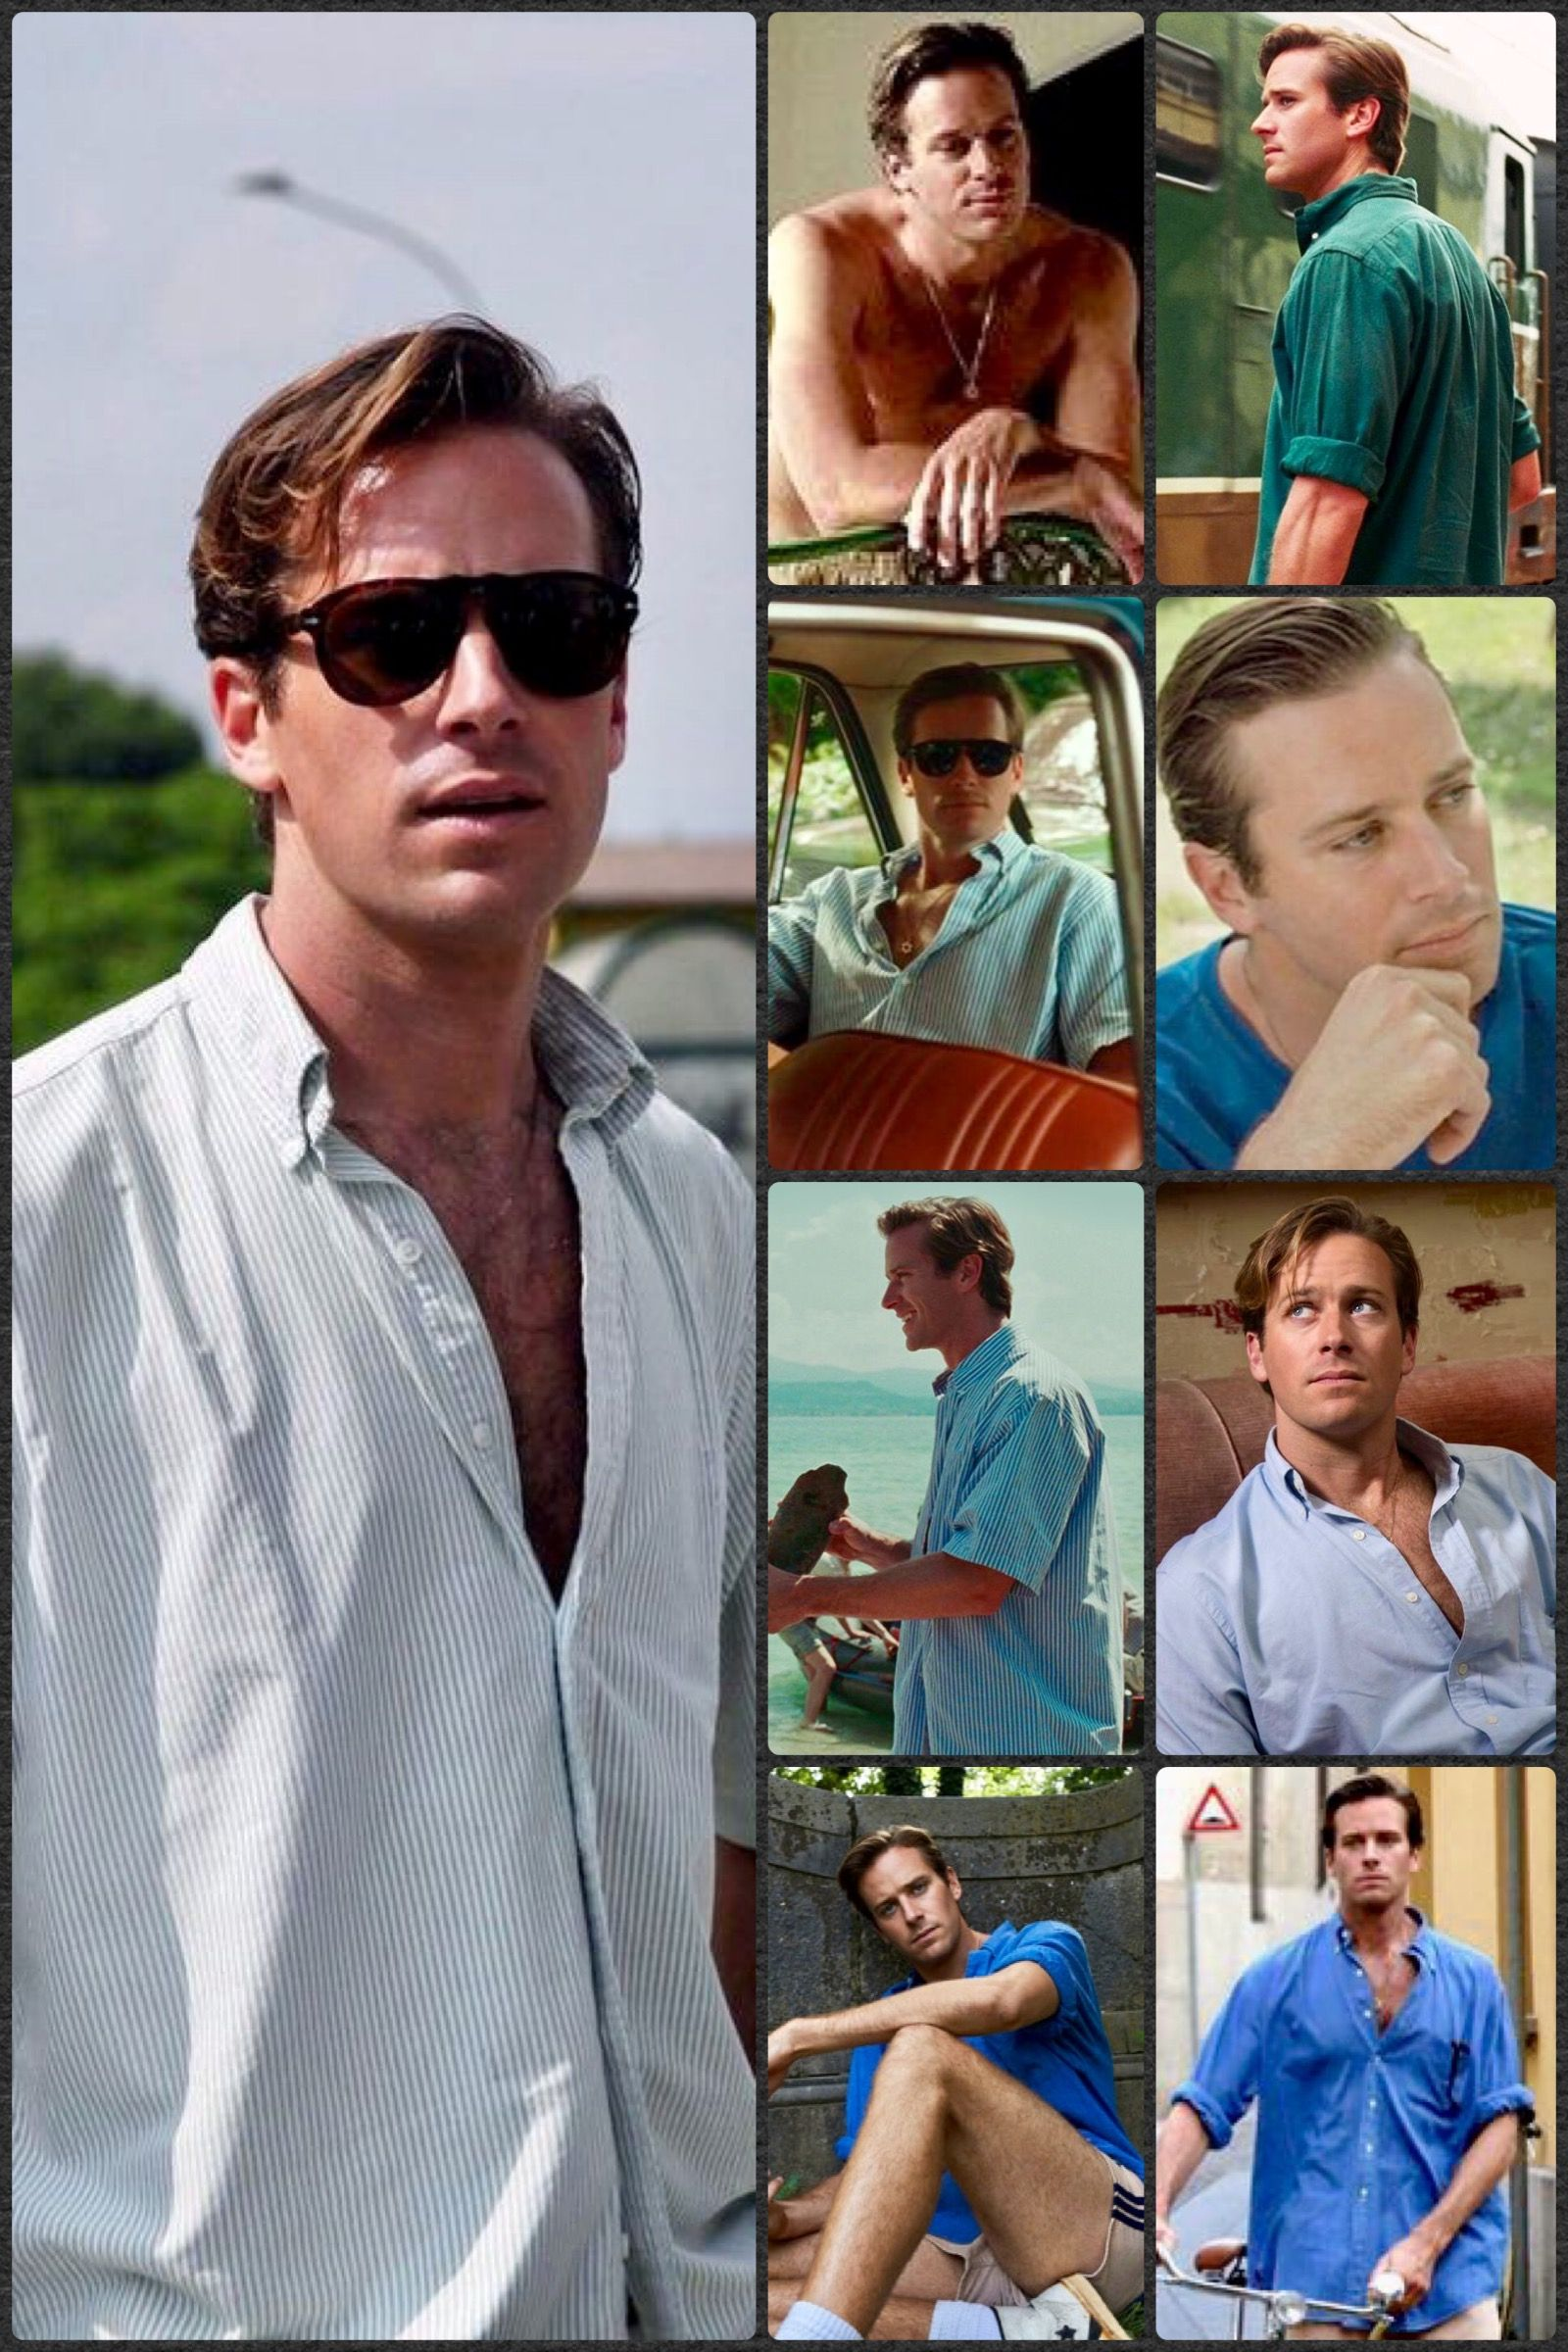 Call Me By Your Name Armie Hammer | Actors, Your name movie, Call me